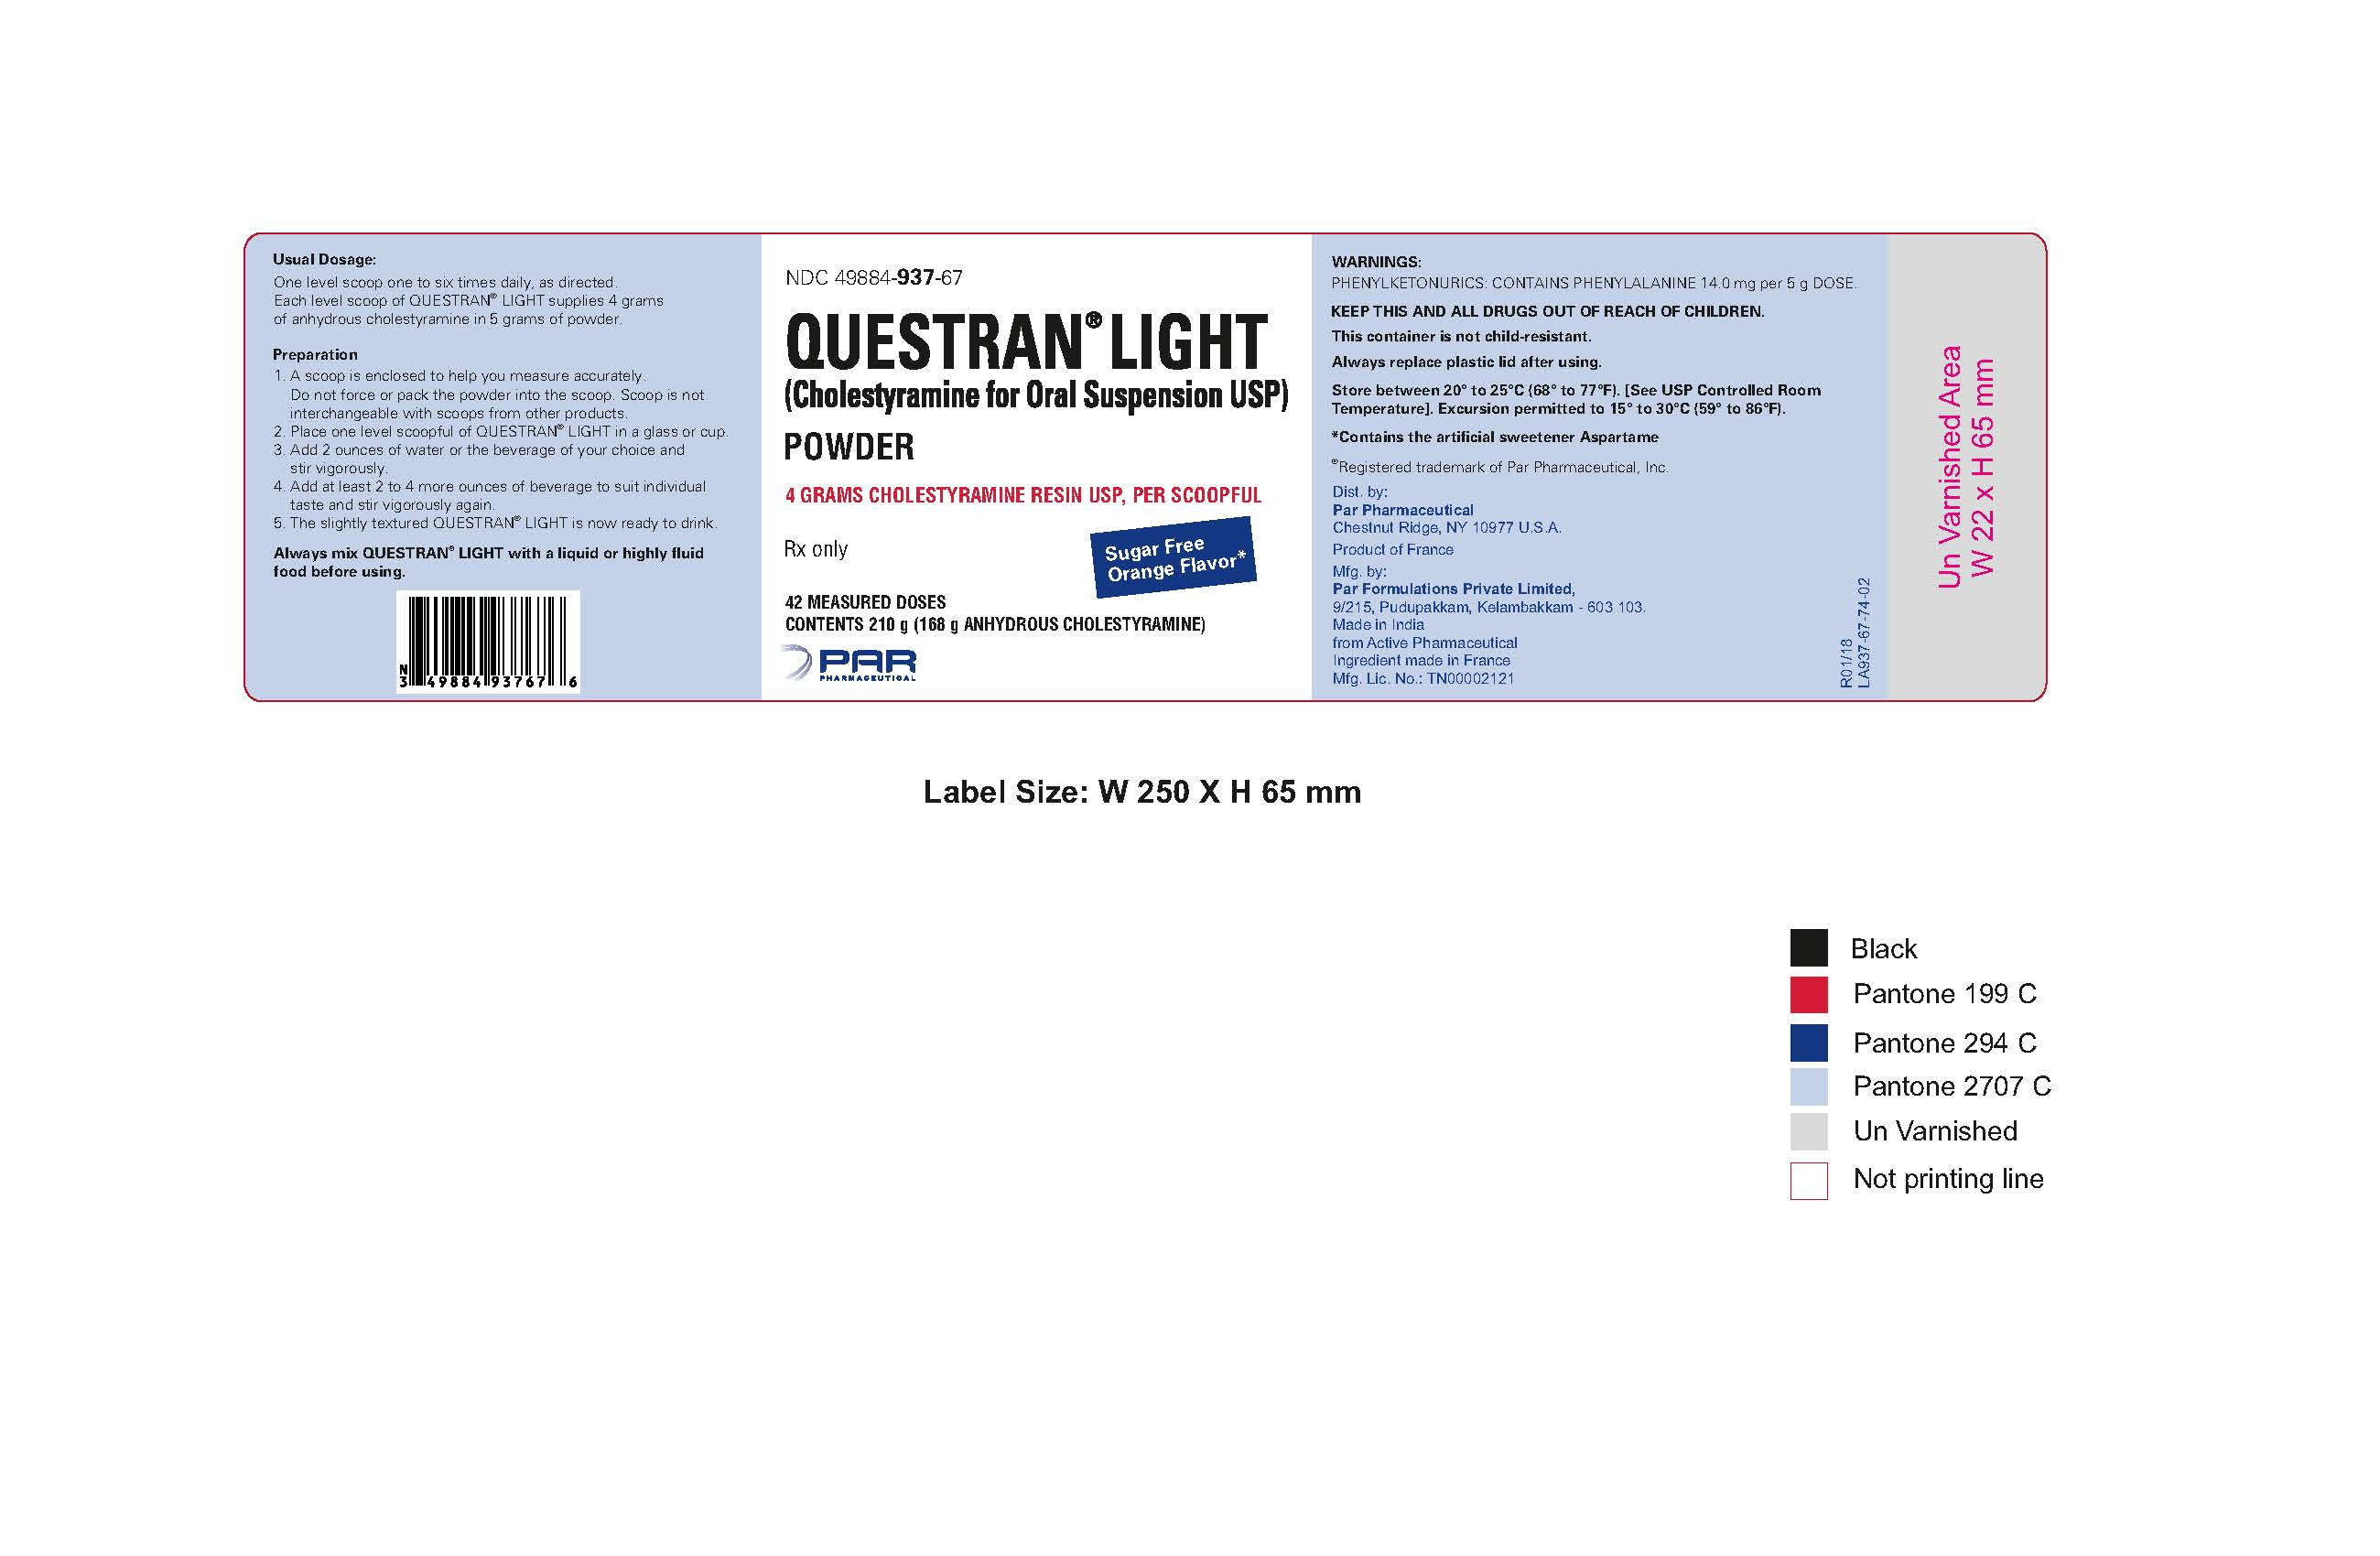 Questran Light Can Label